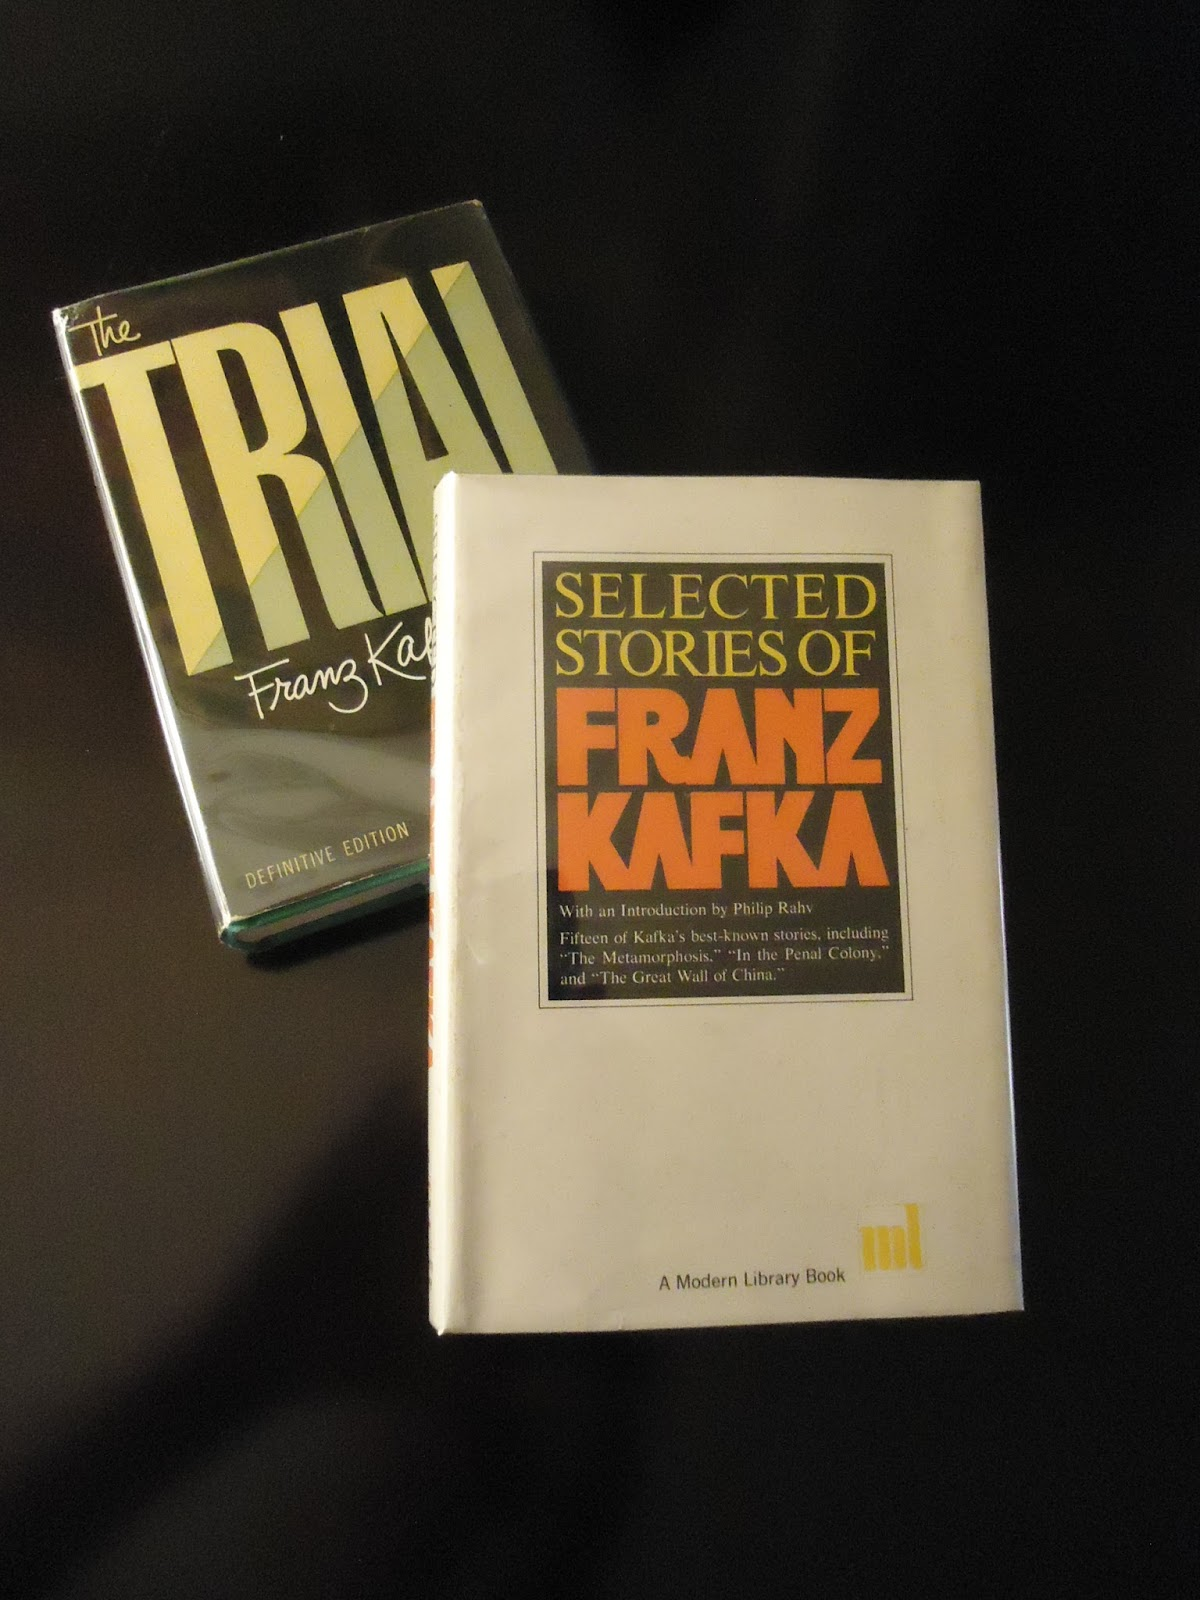 tantonycool 12 great books the trial is the exception that proves the rules of great books by offering us limited character development and no plot like most of kafka s writing